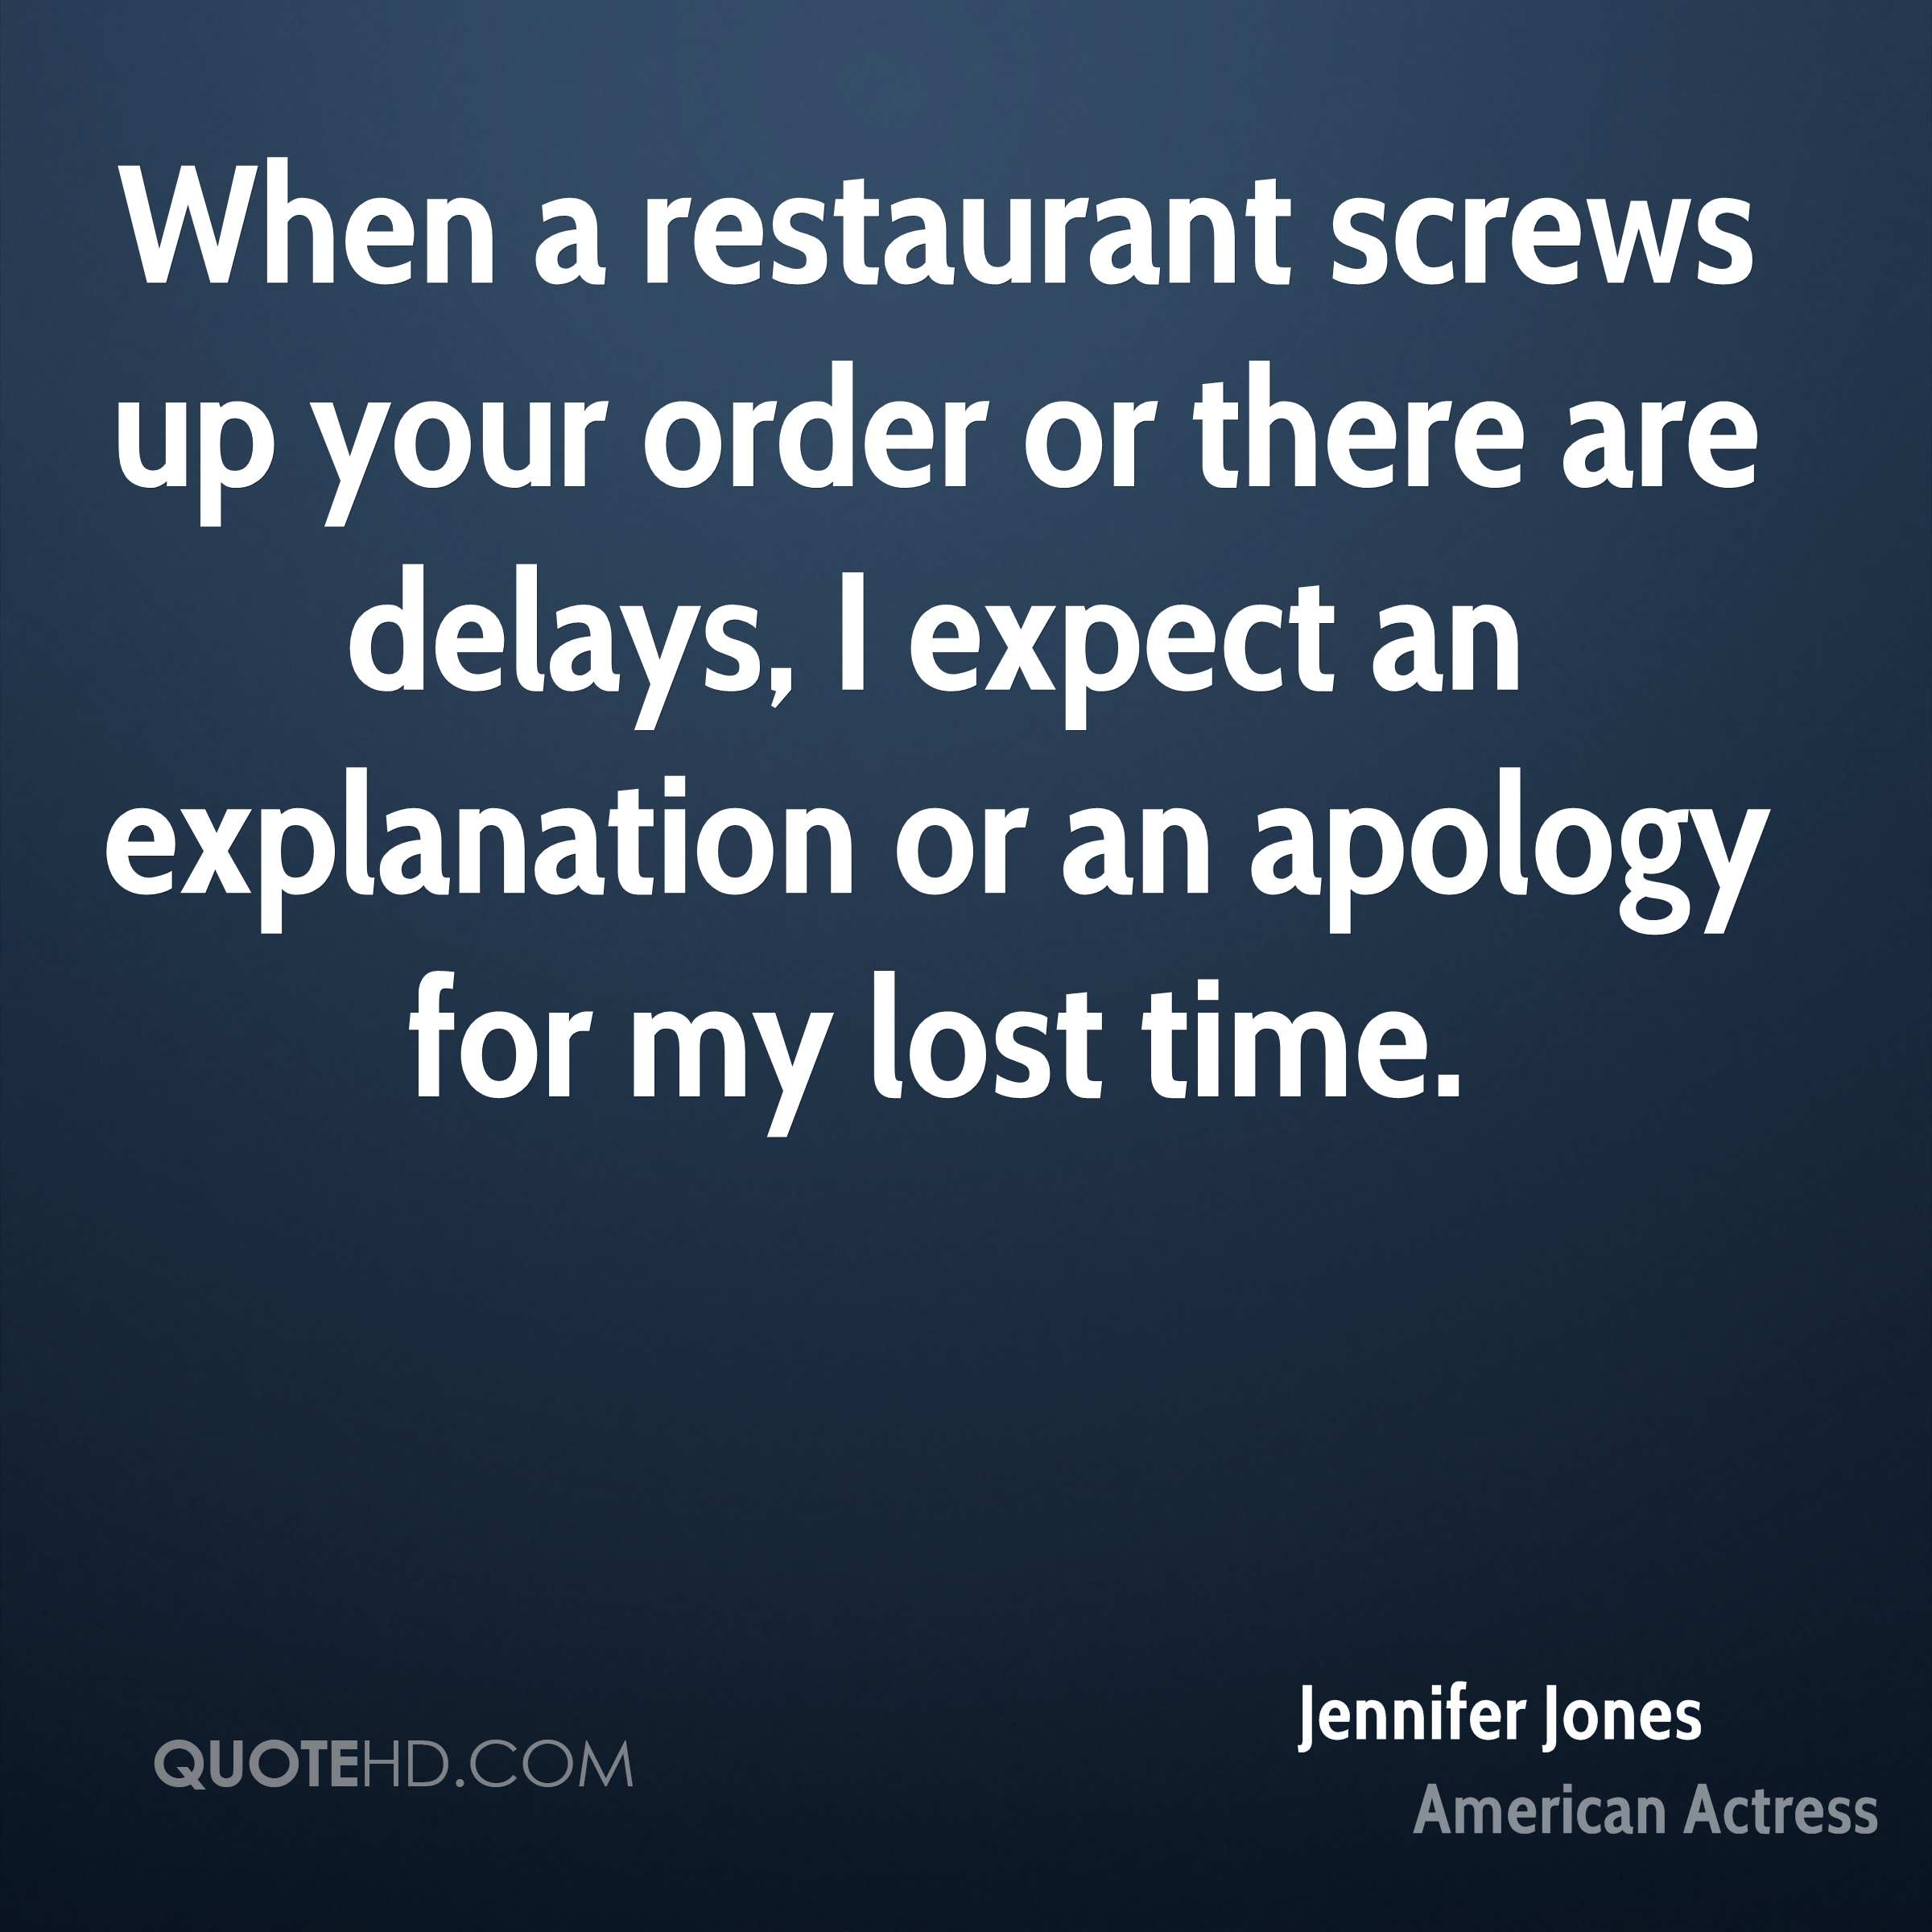 When a restaurant screws up your order or there are delays, I expect an explanation or an apology for my lost time.